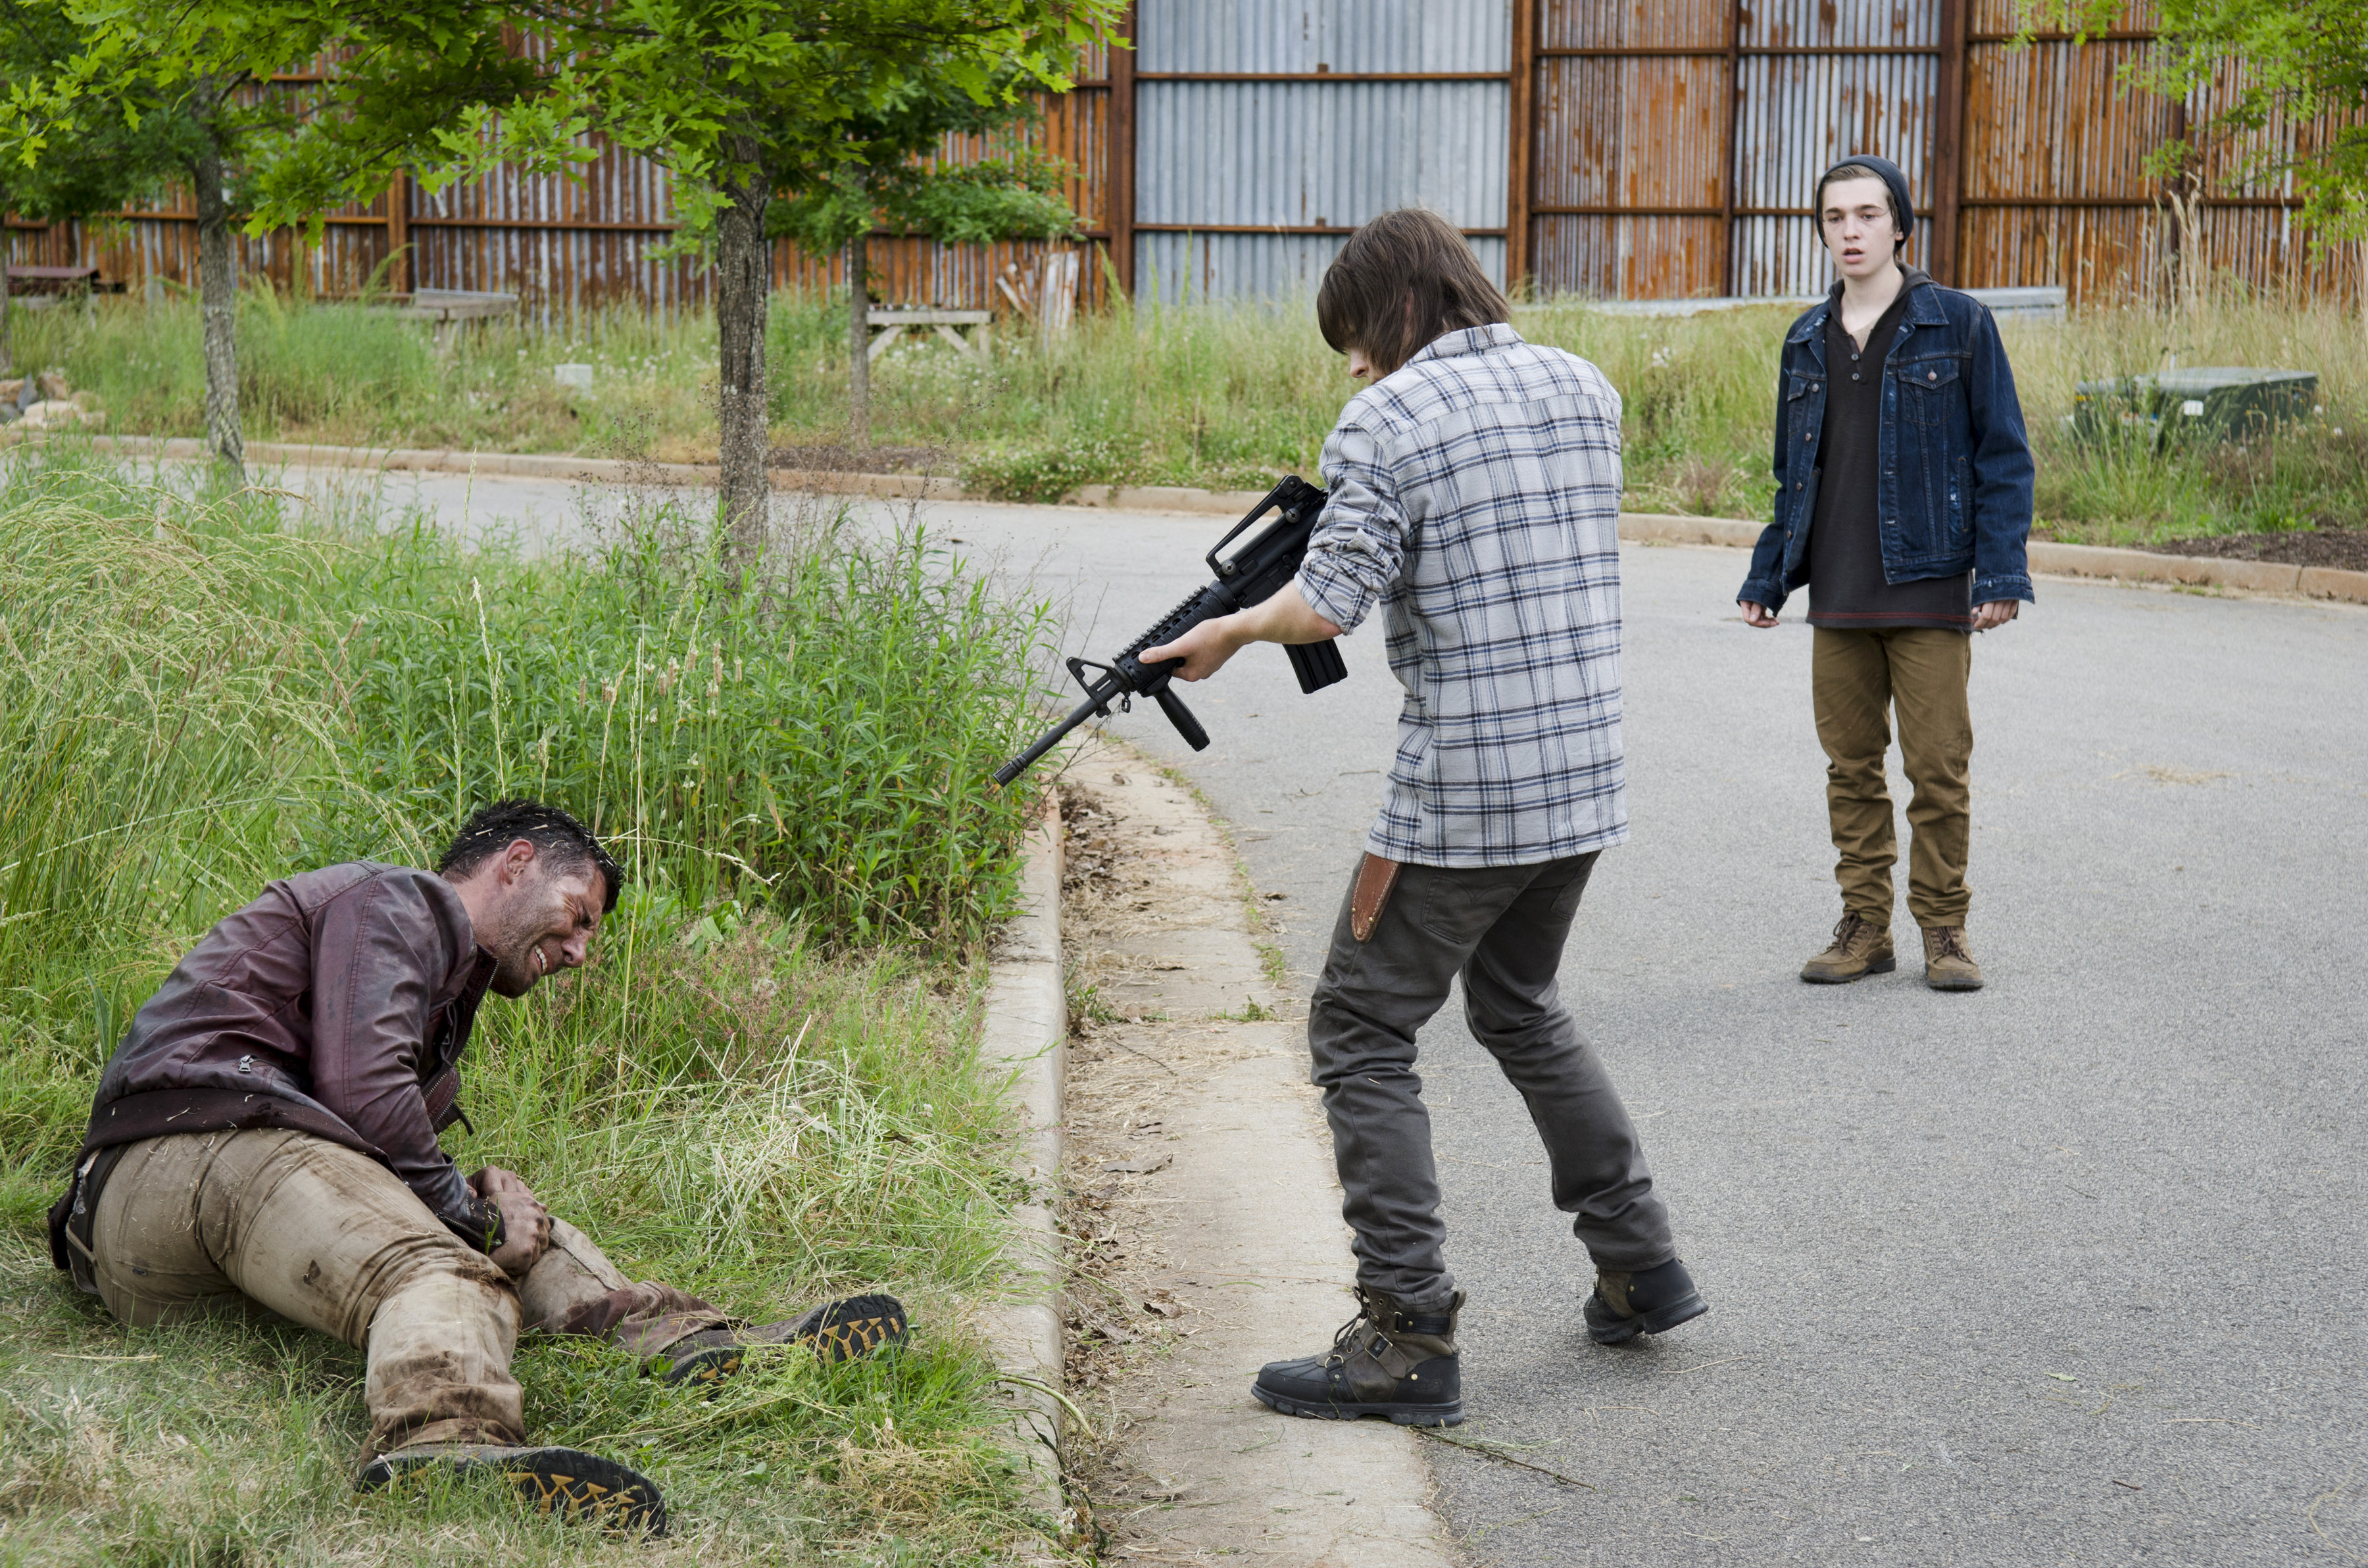 How did the Walking Dead shoot